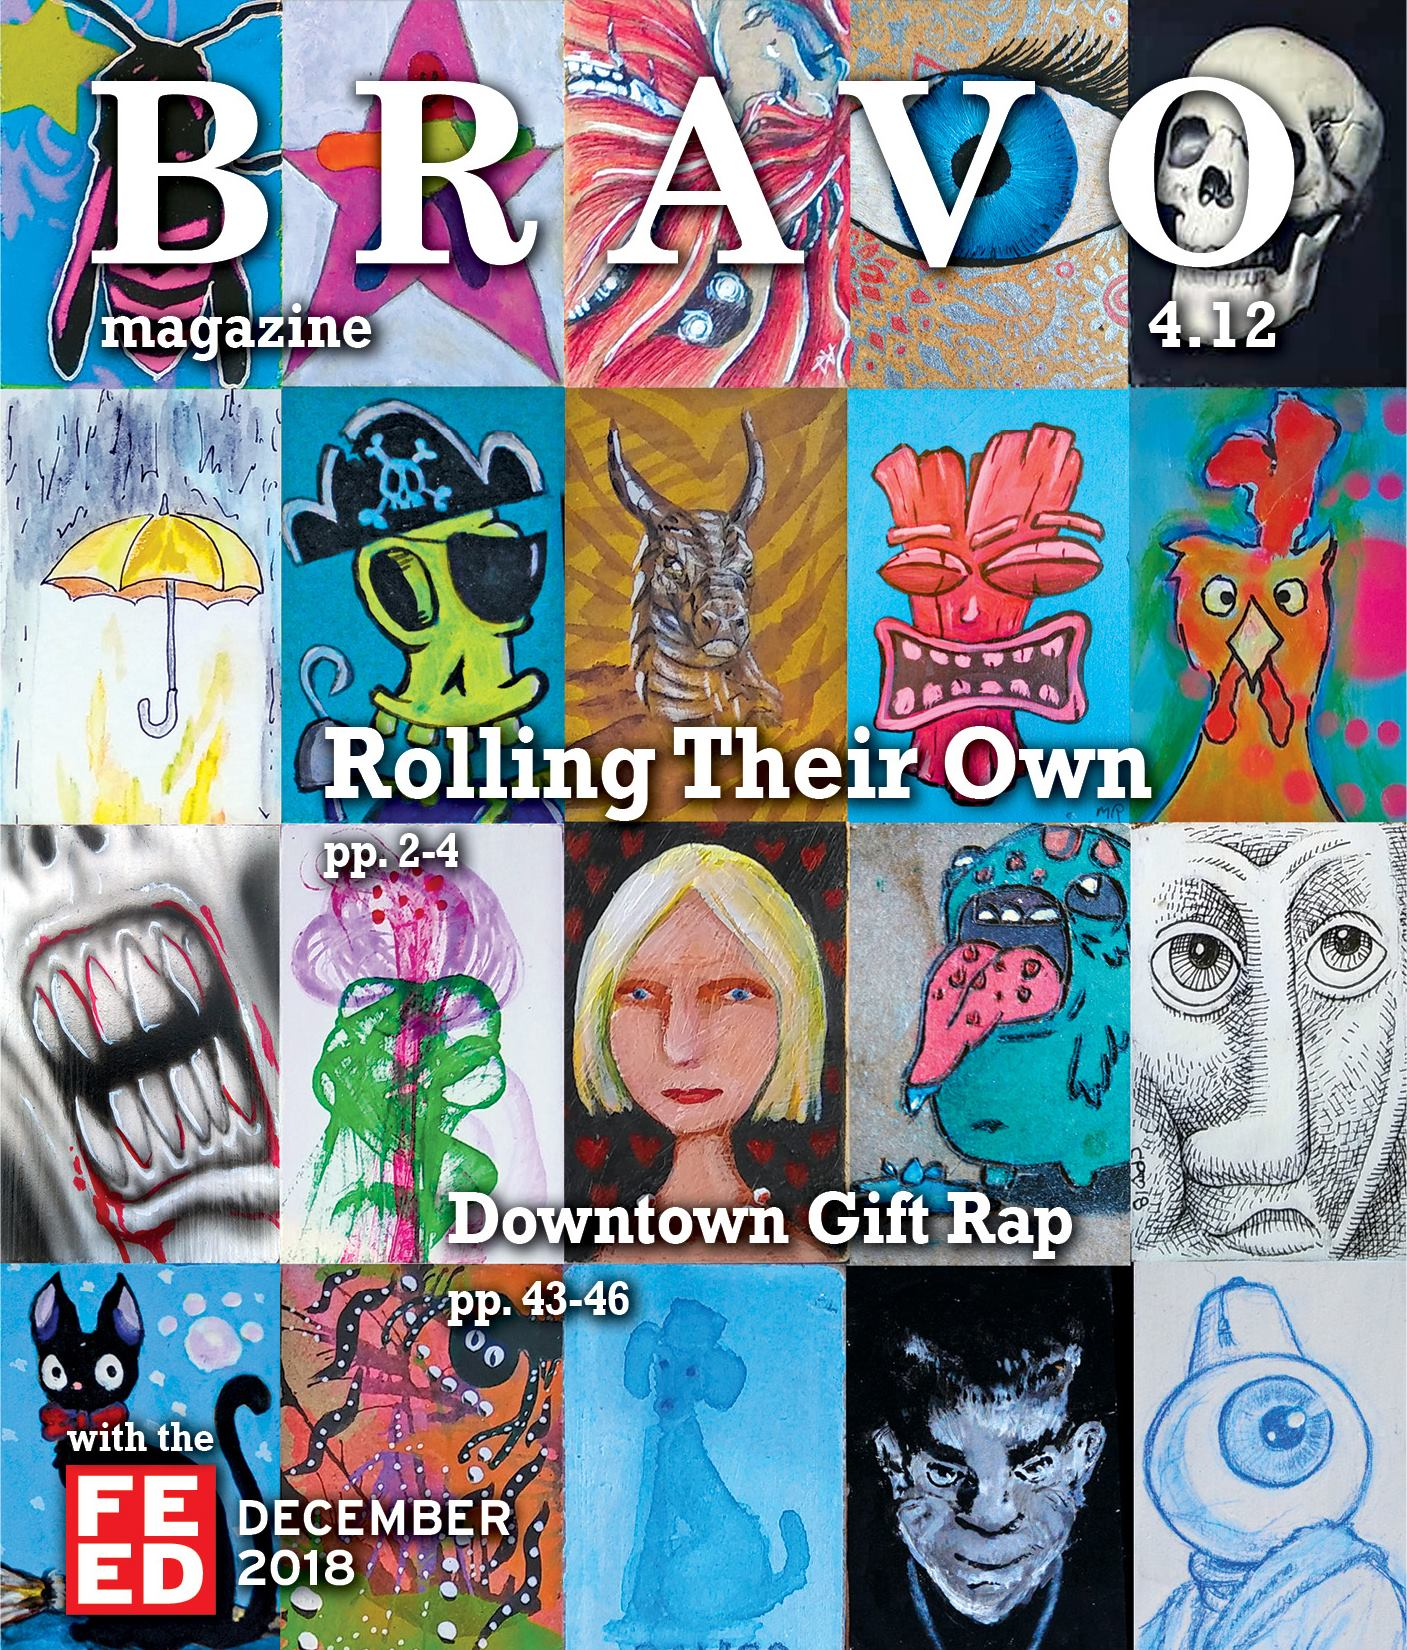 Bravo Magazine December Cover Features the Mobile Art Machine